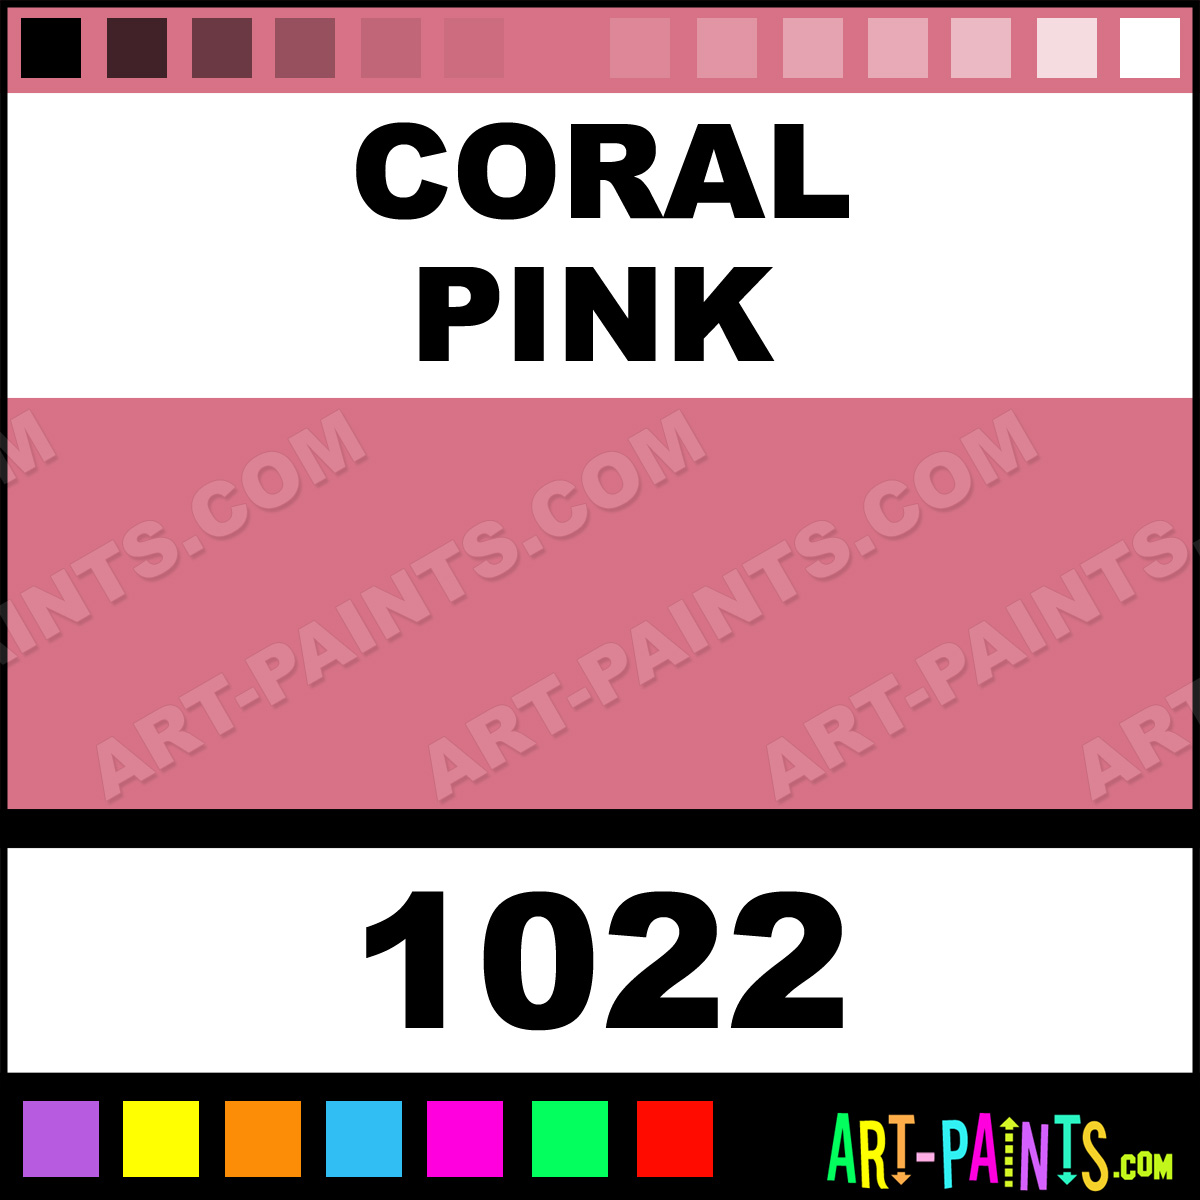 Coral Pink Marker Fabric Textile Paints